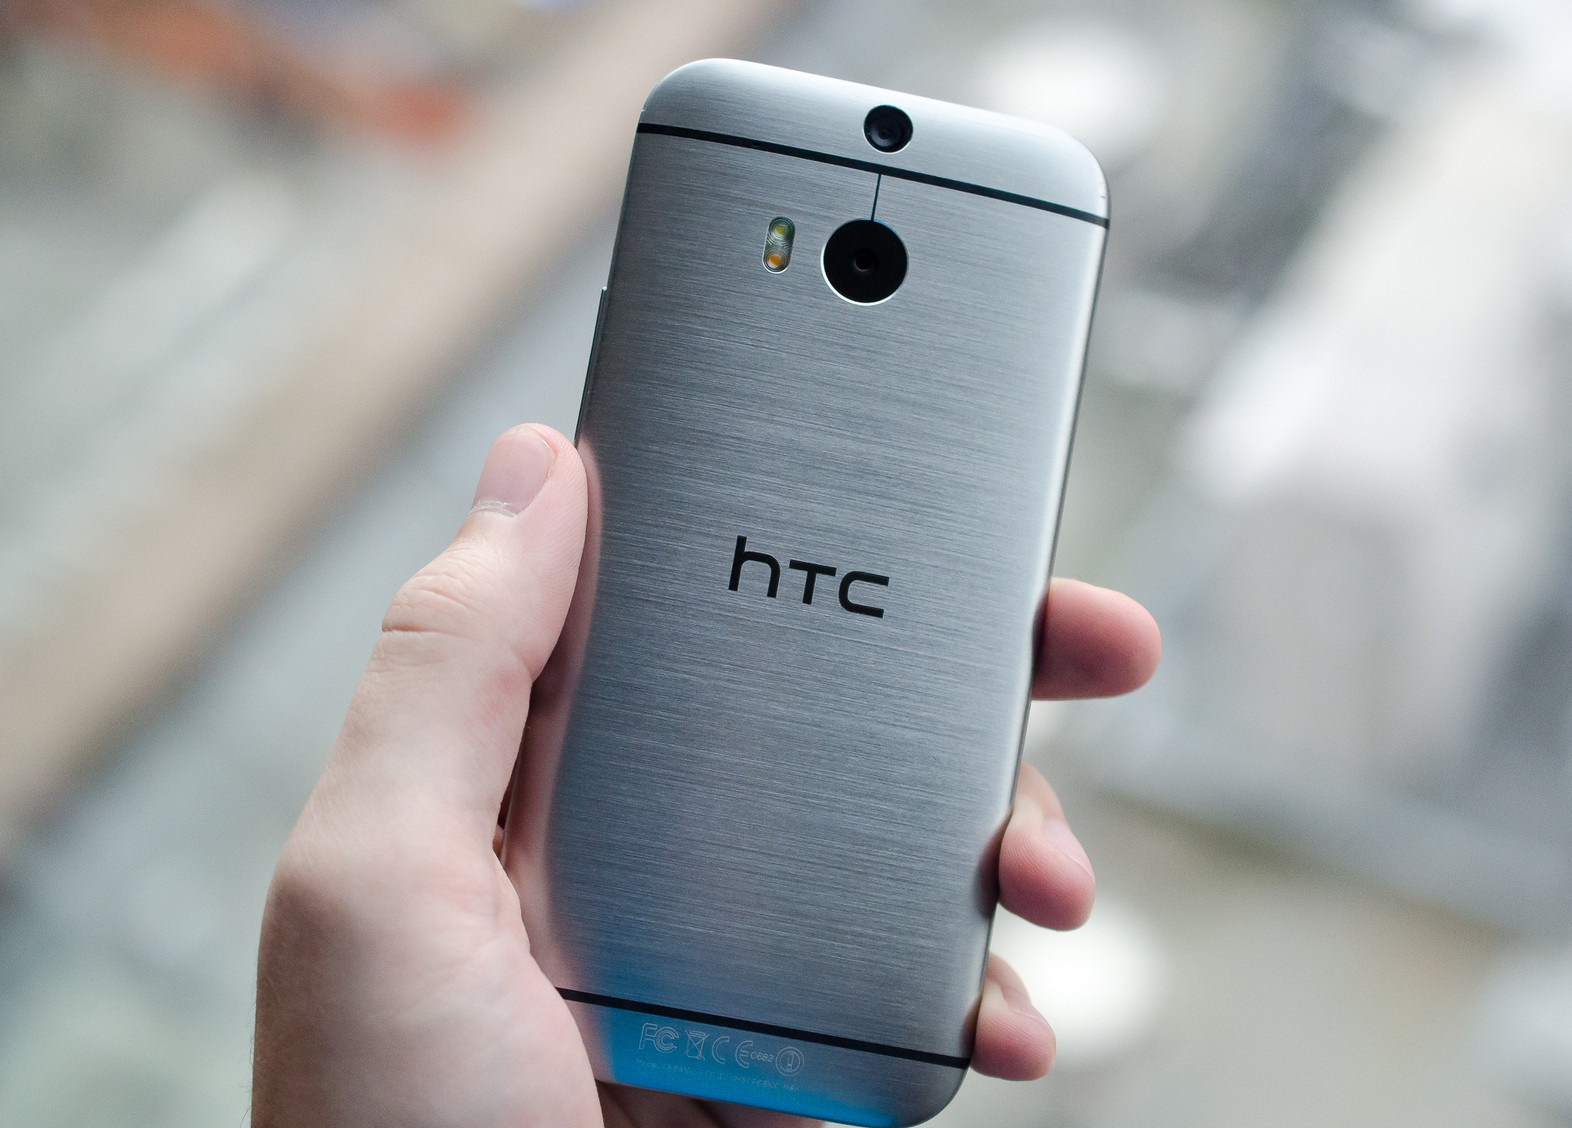 htc one m8 cũ